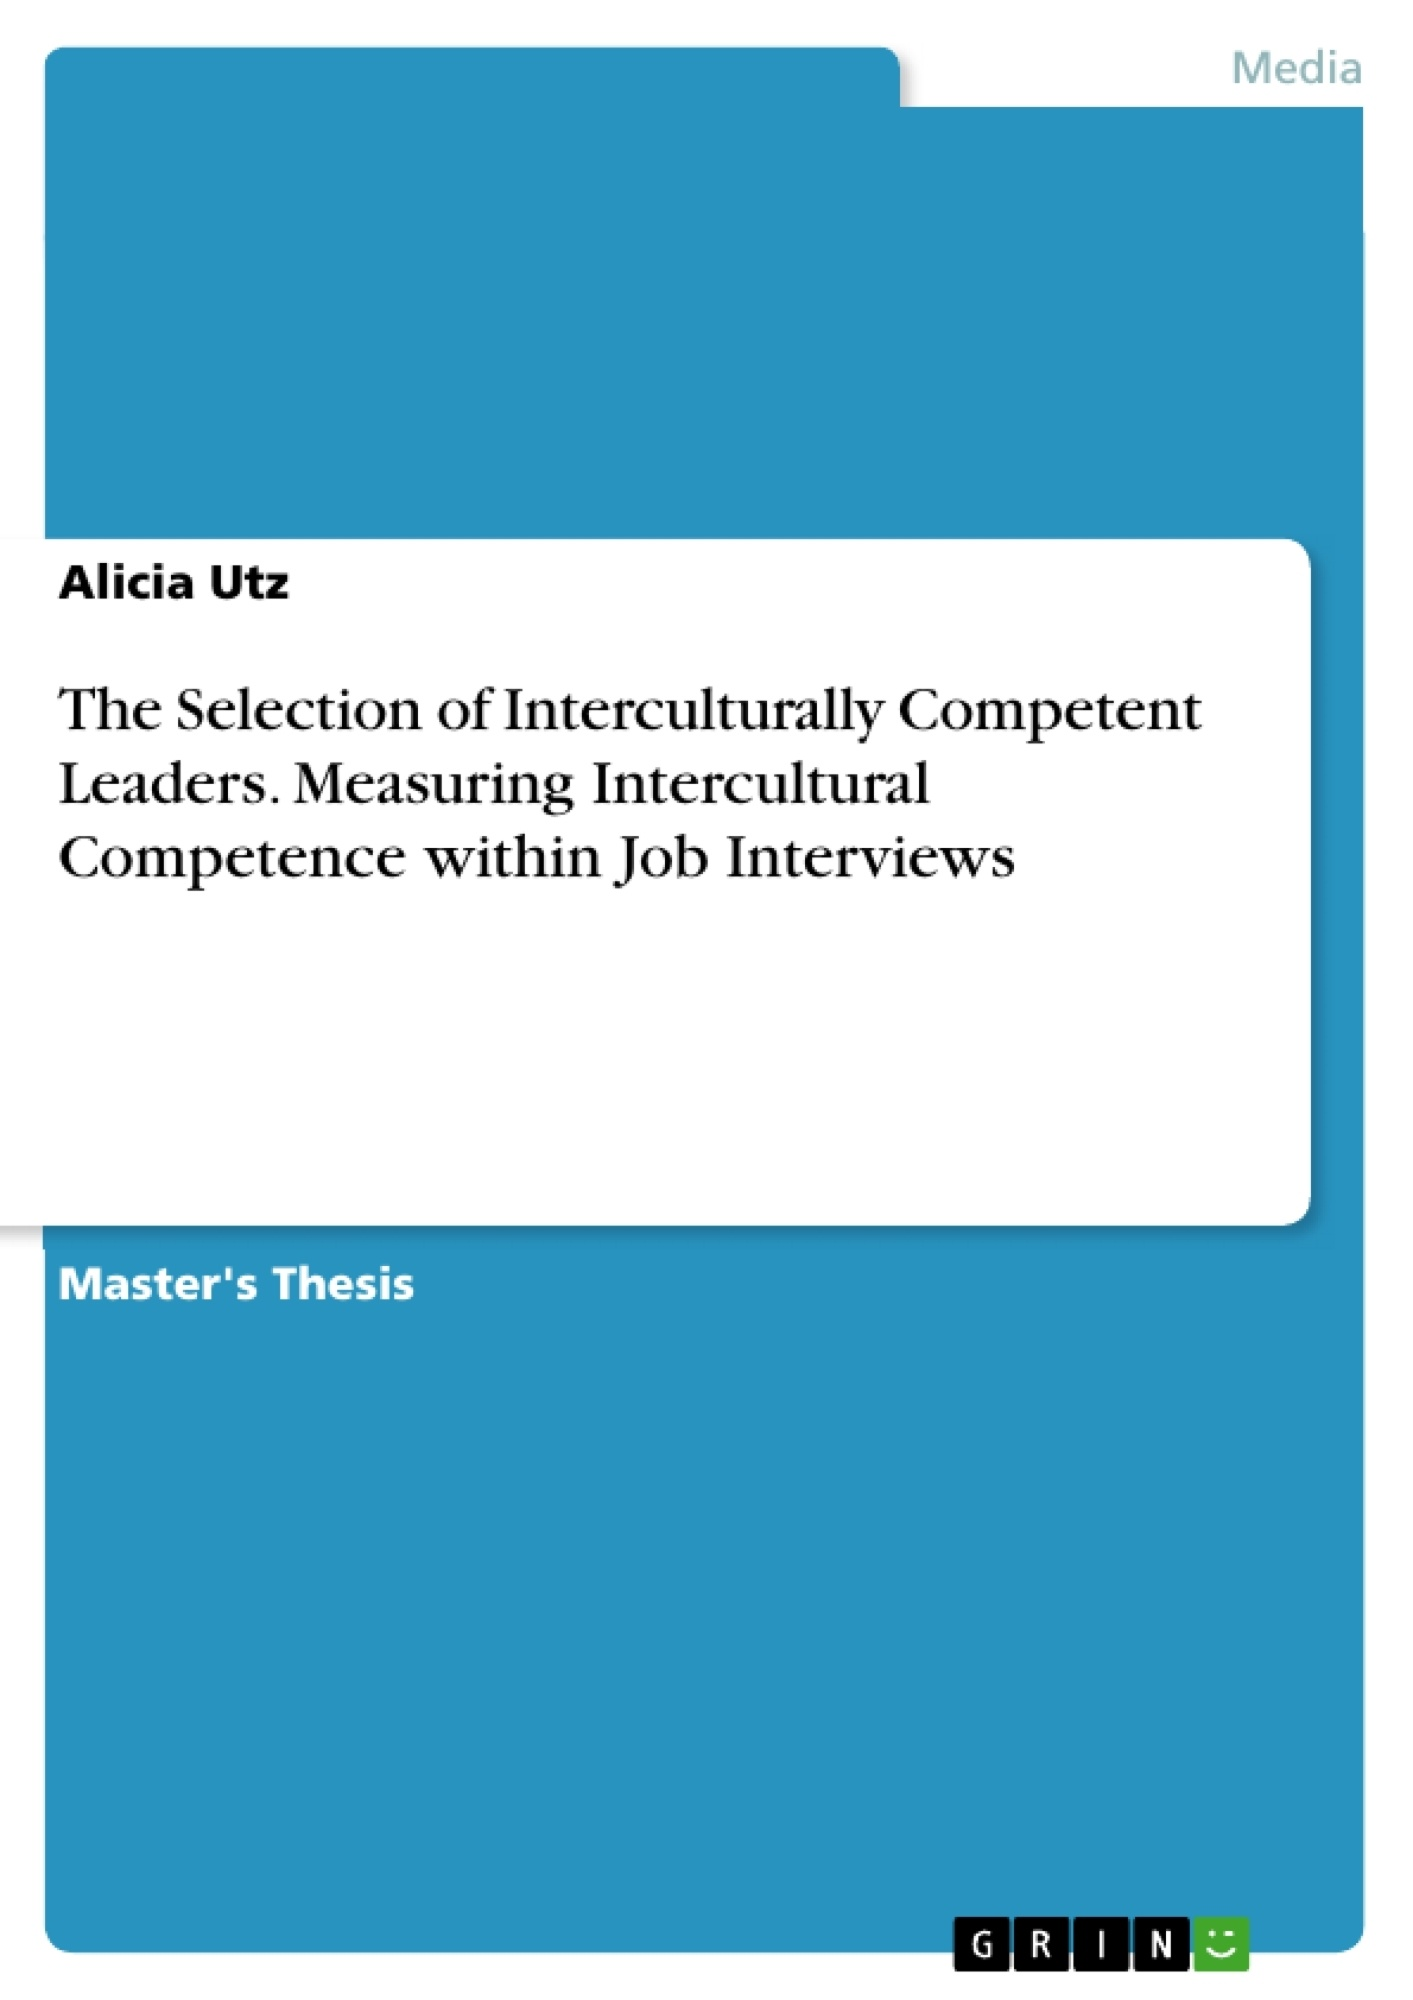 Title: The Selection of Interculturally Competent Leaders. Measuring Intercultural Competence within Job Interviews